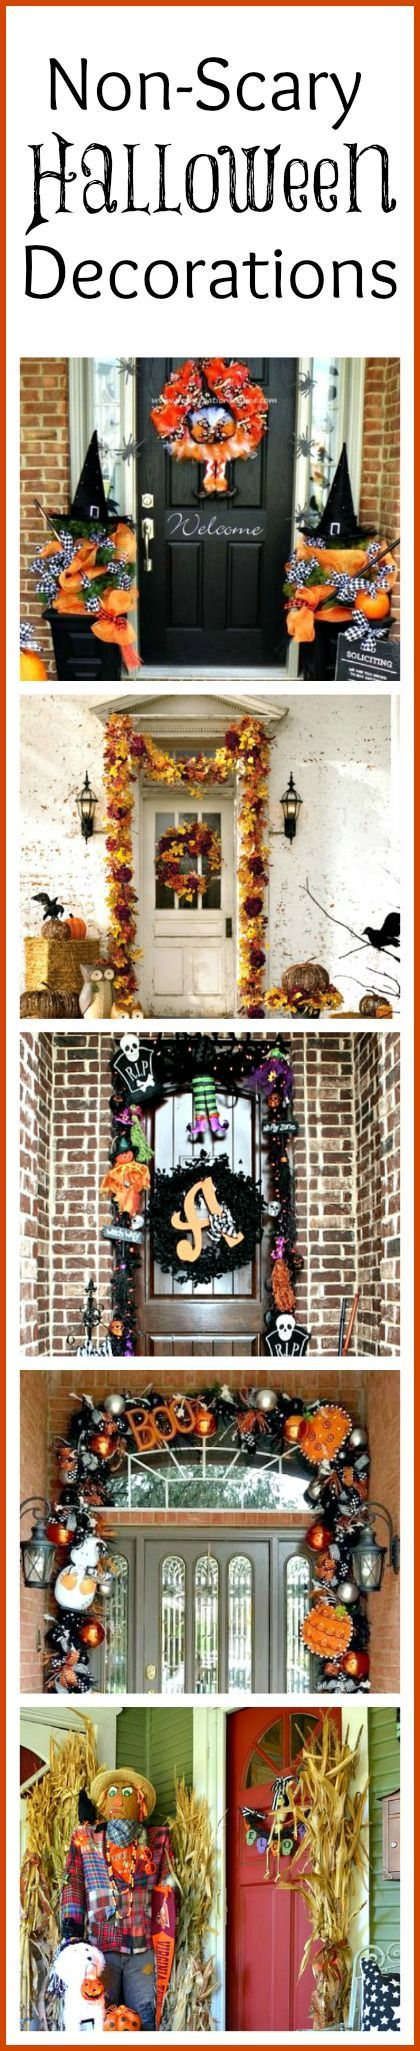 5 on friday 5 non scary outdoor halloween decorations - Non Scary Halloween Decorations